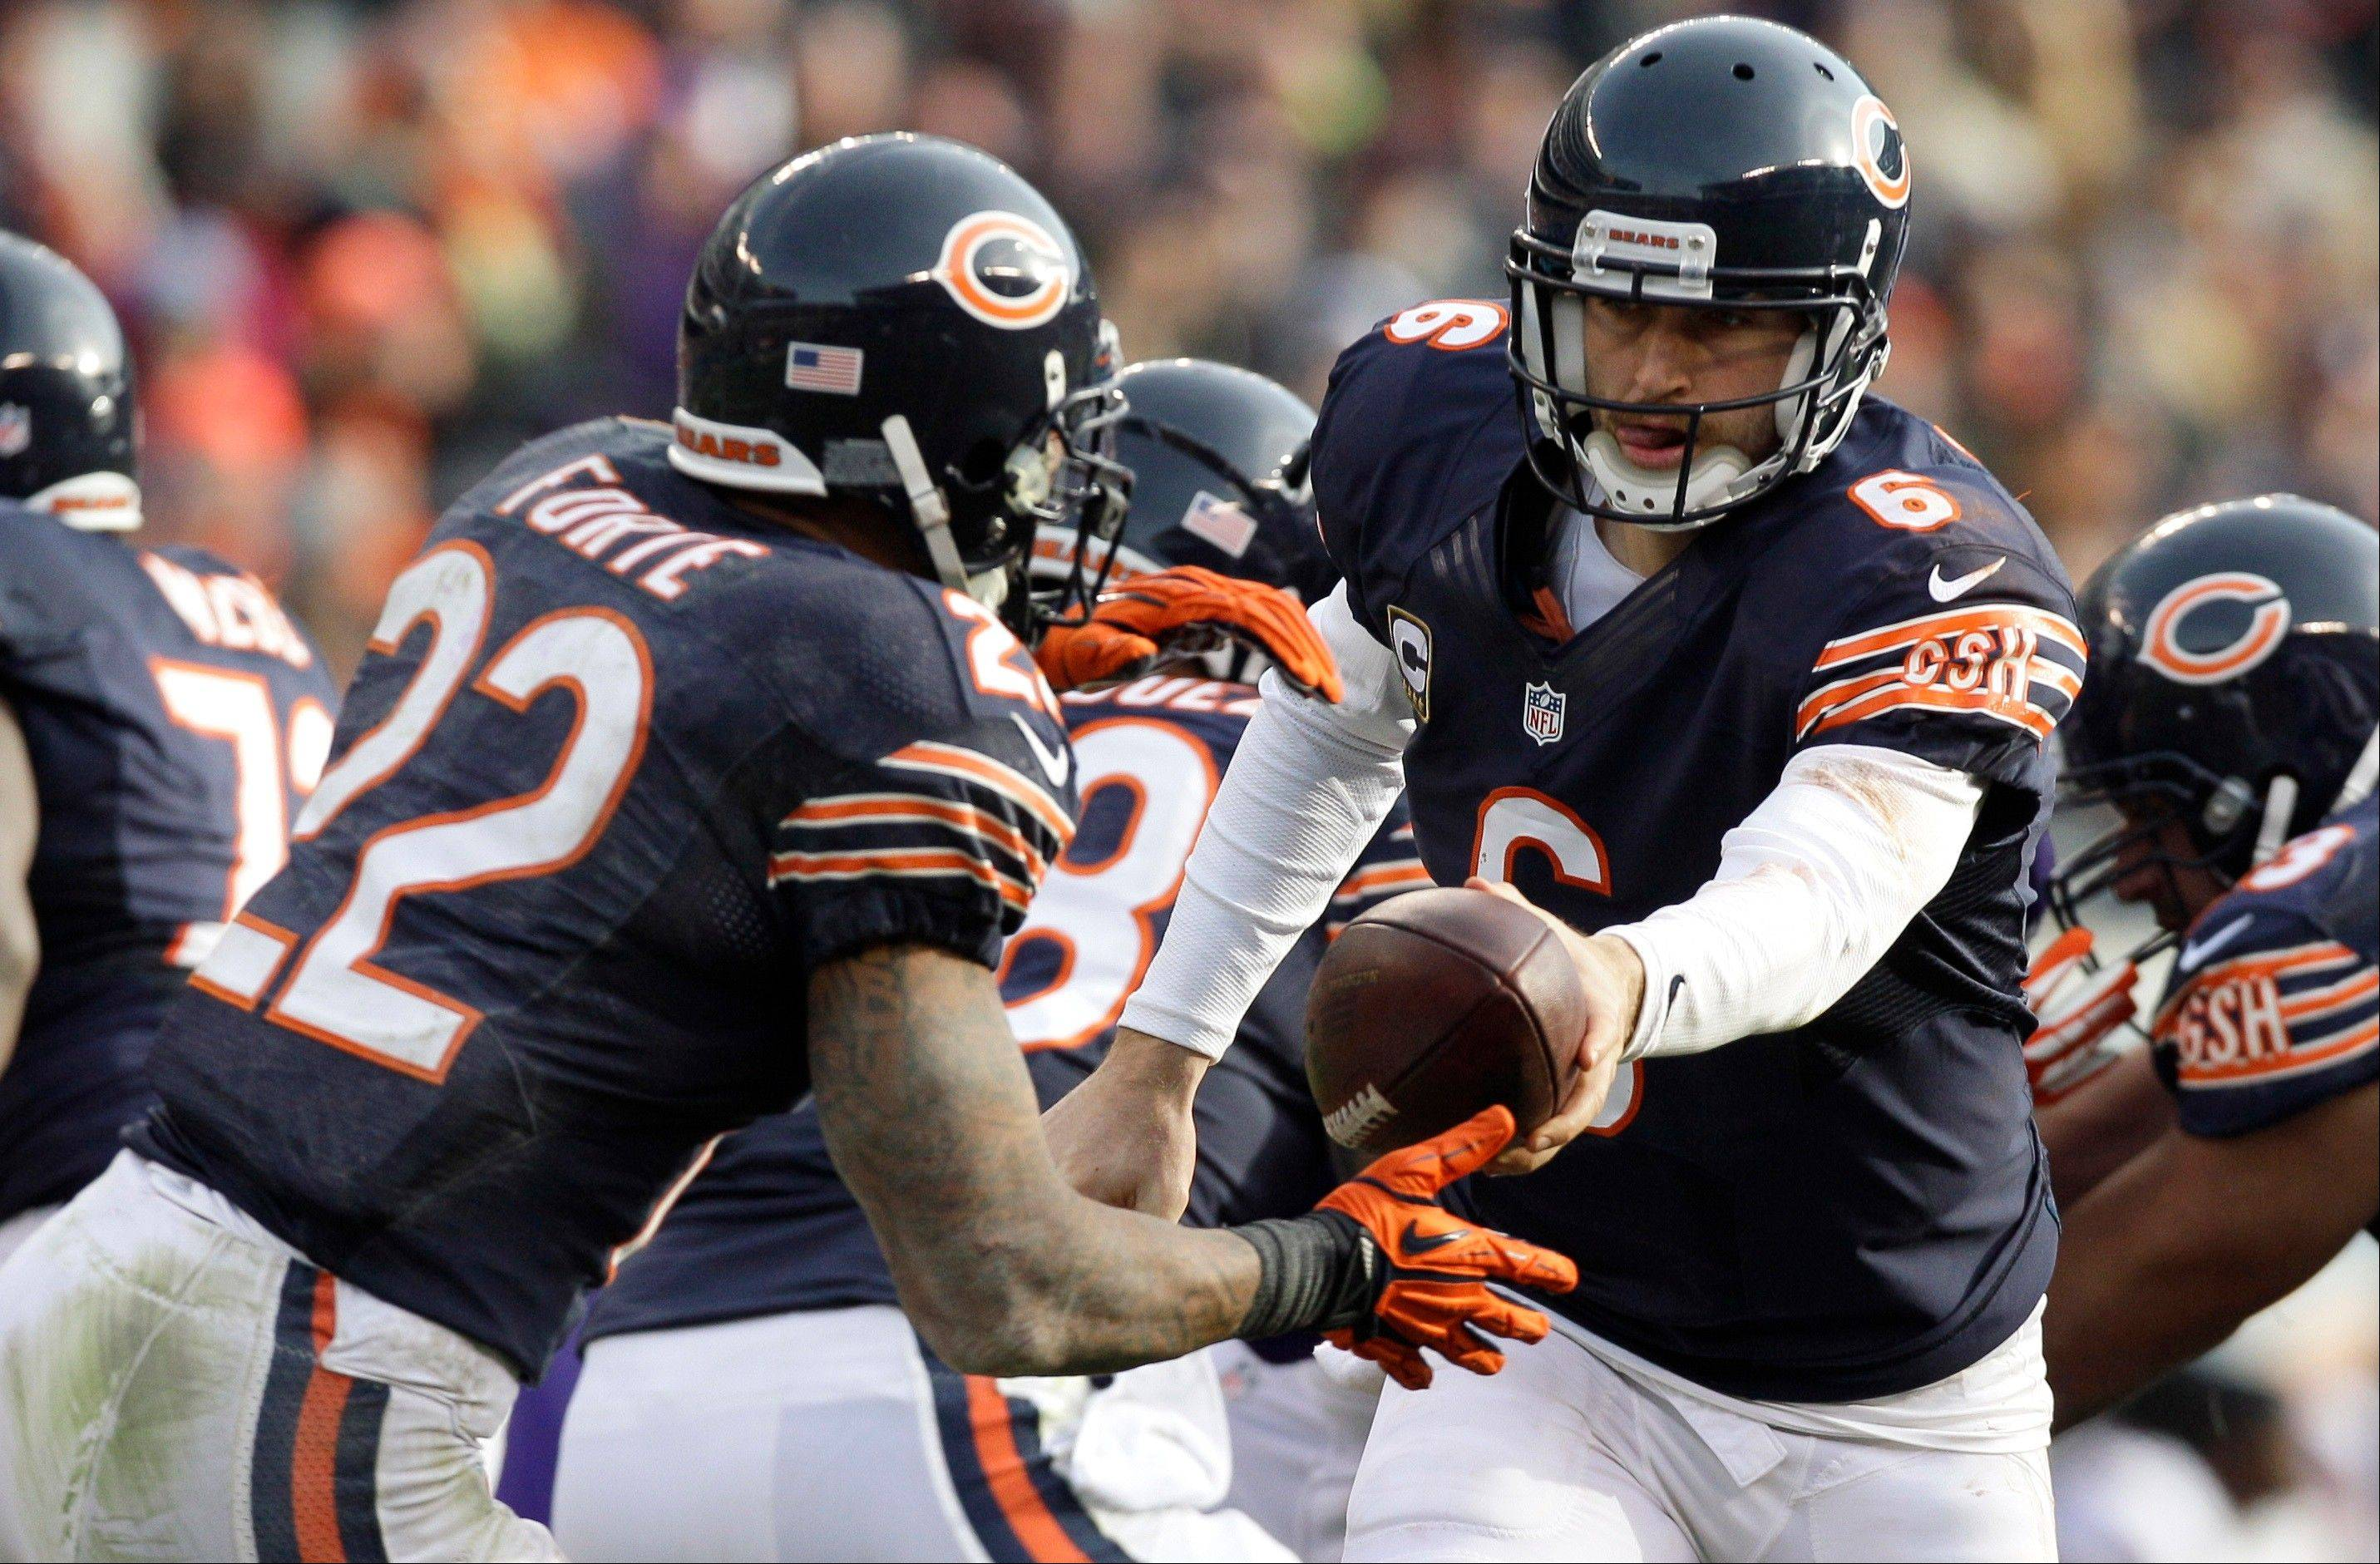 Good news for Bears fans: they should see running back Matt Forte take quite a few handoffs from quarterback Jay Cutler on Sunday against the Seahawks at Soldier Field. Forte�s ankle injury has improved and he expects to play.